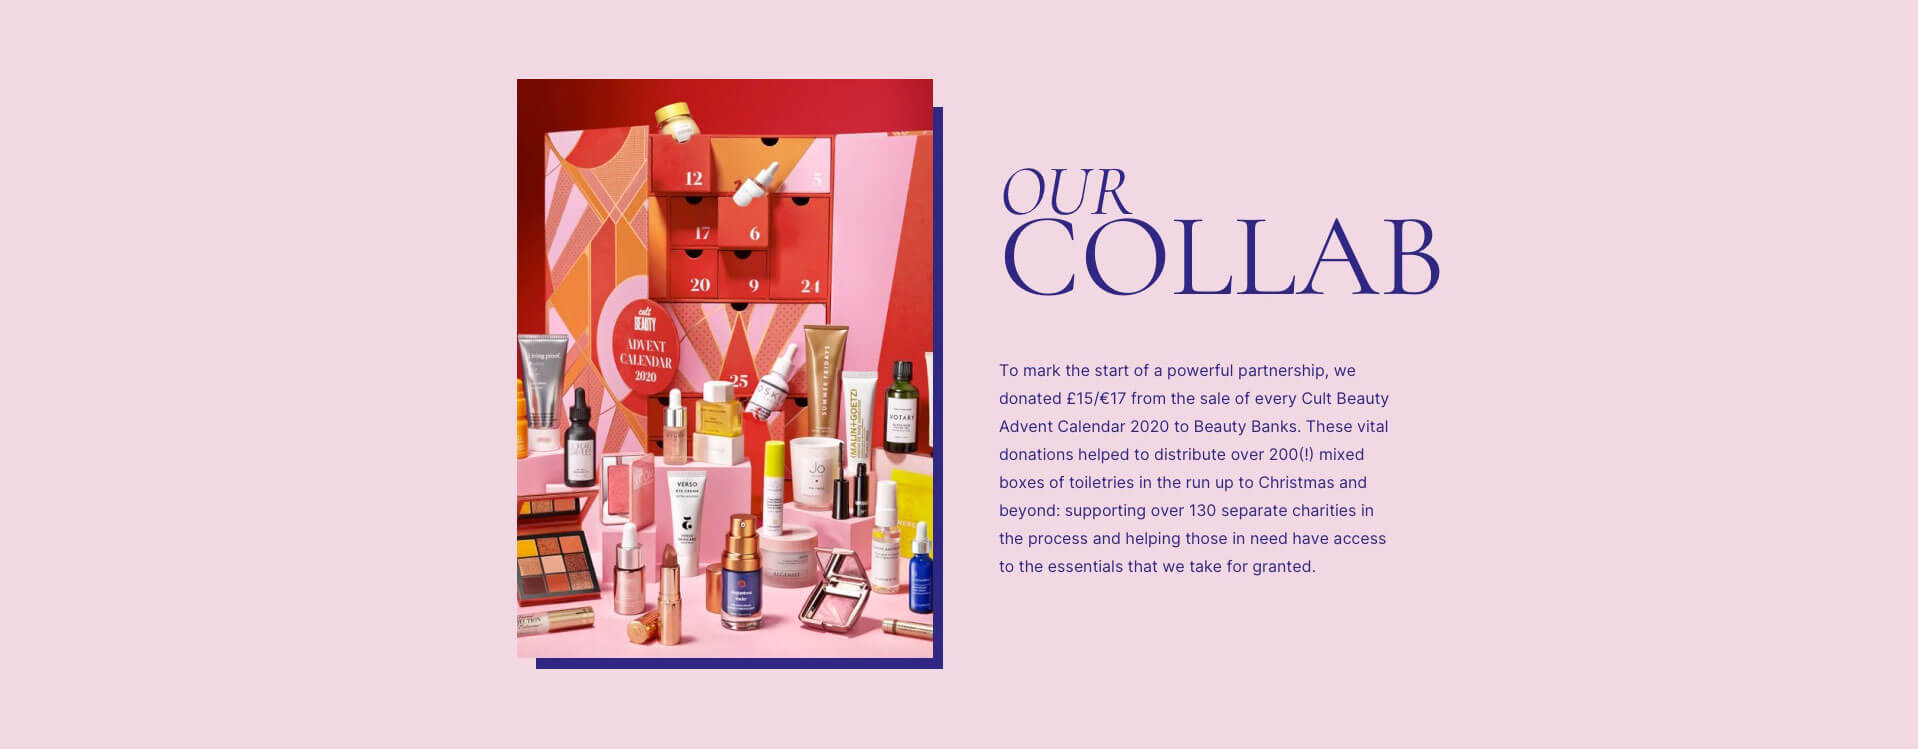 Our collab. To mark the start of a powerful partnership, we donated £15/€17 from the sale of every Cult Beauty Calendar 2020 to Beauty Banks. These vital donations helped to distribute over 200(!) mixed boxes of toiletries in the run up to Christmas and beyond: supporting over 130 separate charities in the process and helping those in need have access to the essentials that we take for granted.